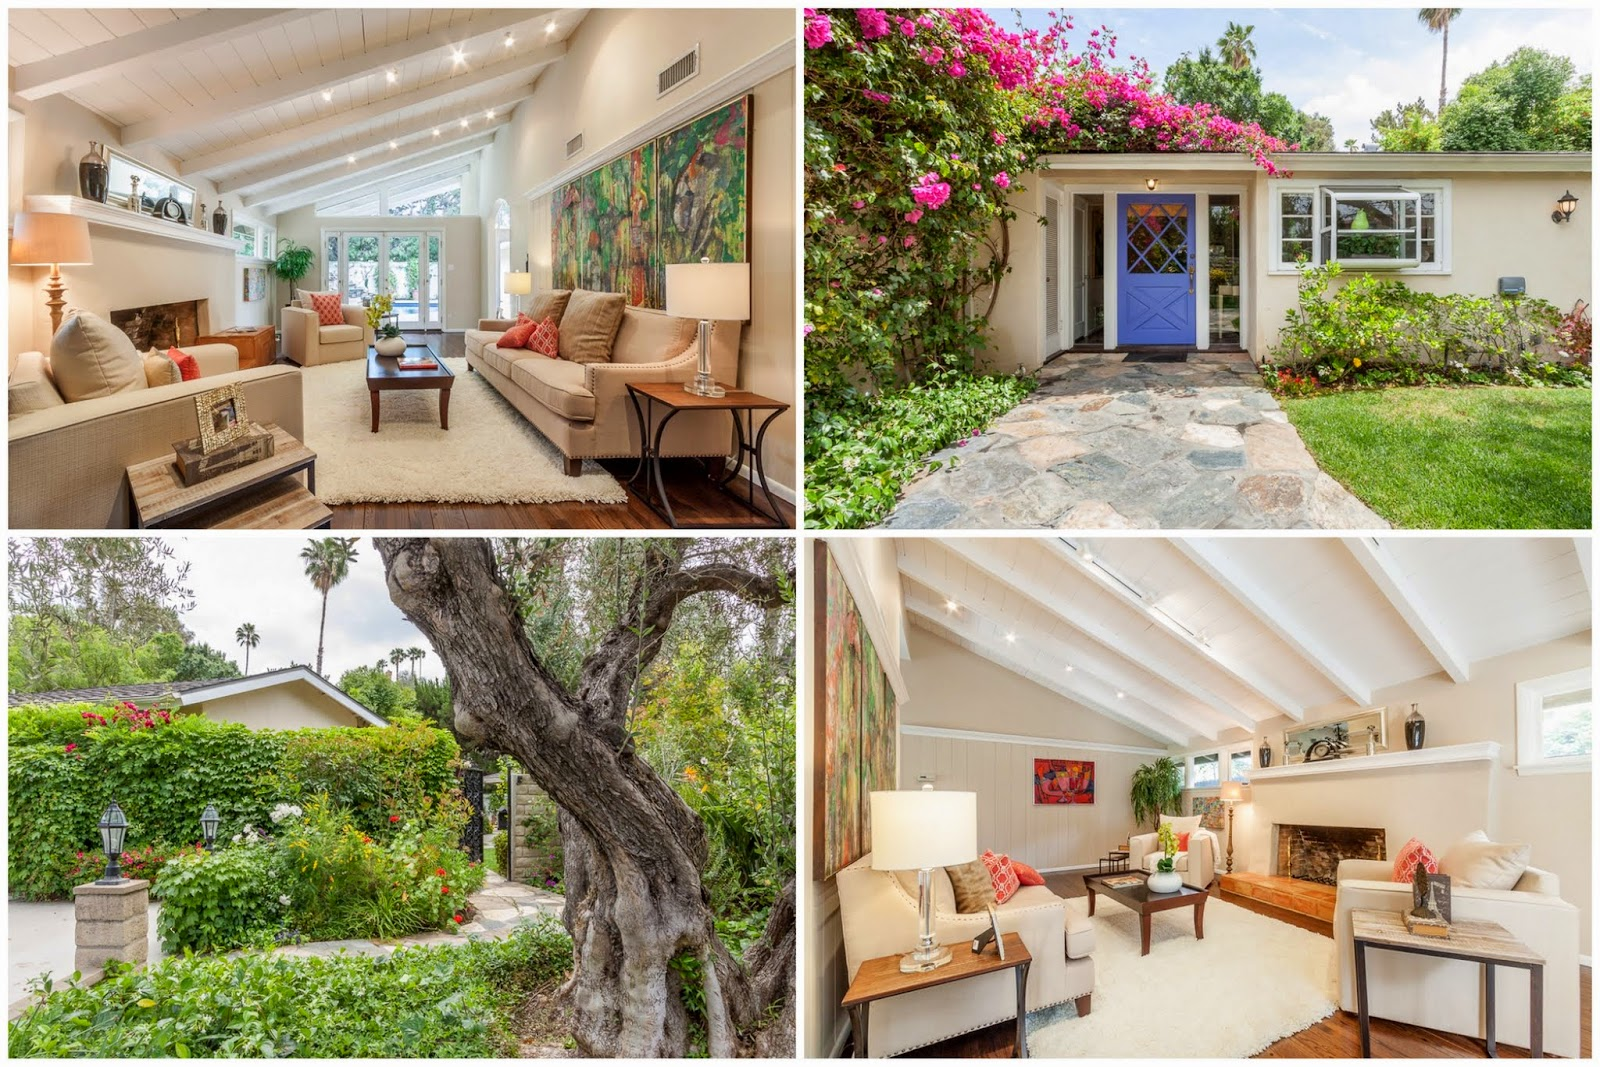 Celeb R E Panic At The Disco 39 S Brendon Urie Purchases Encino Ranch Home San Fernando Valley